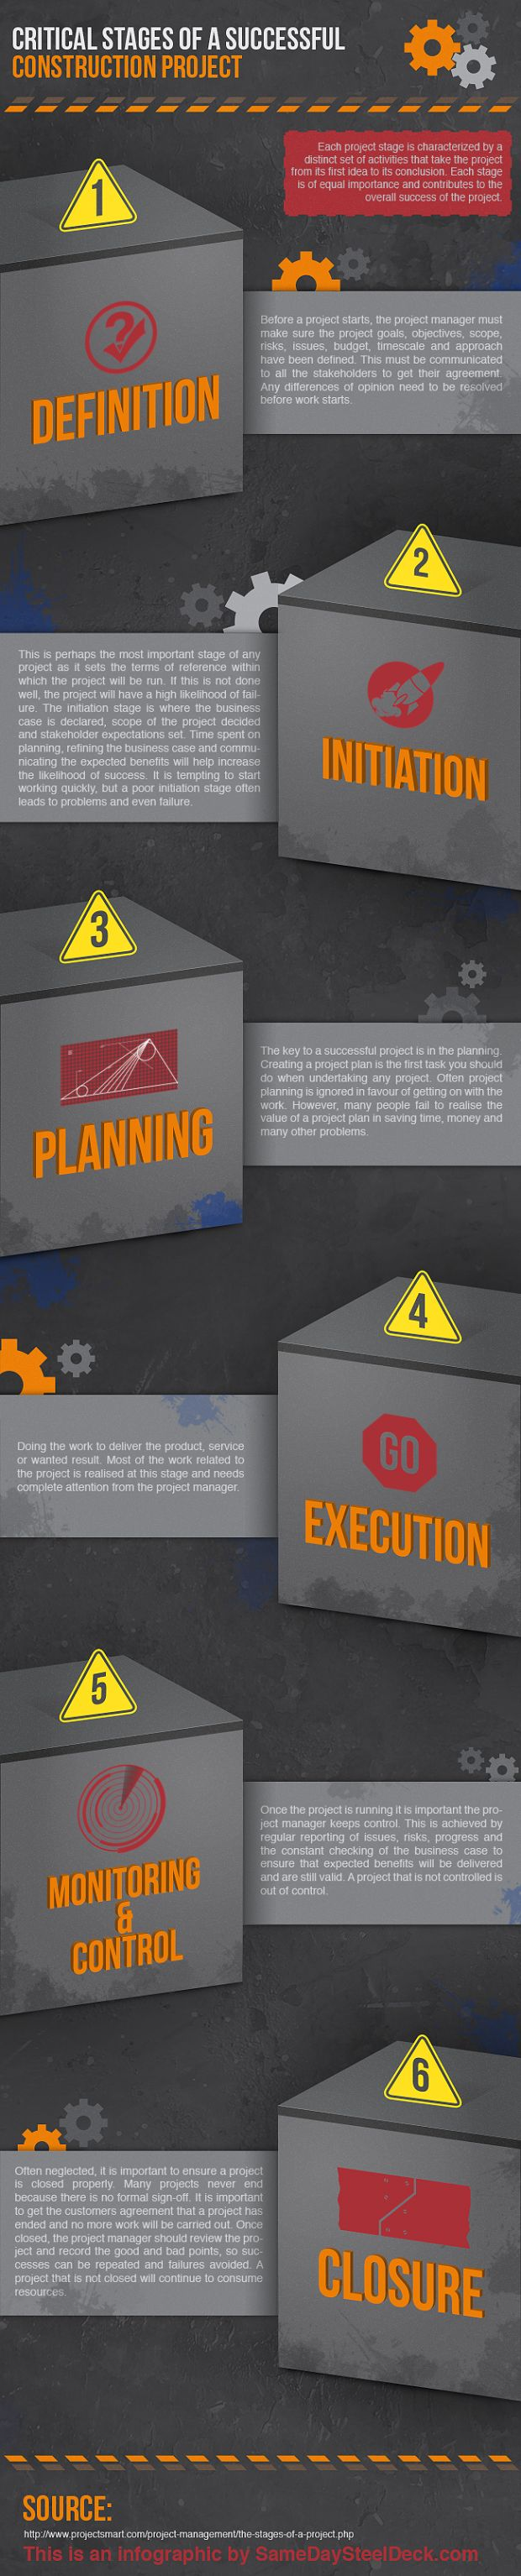 Critical Stages of a Successful Construction Planning